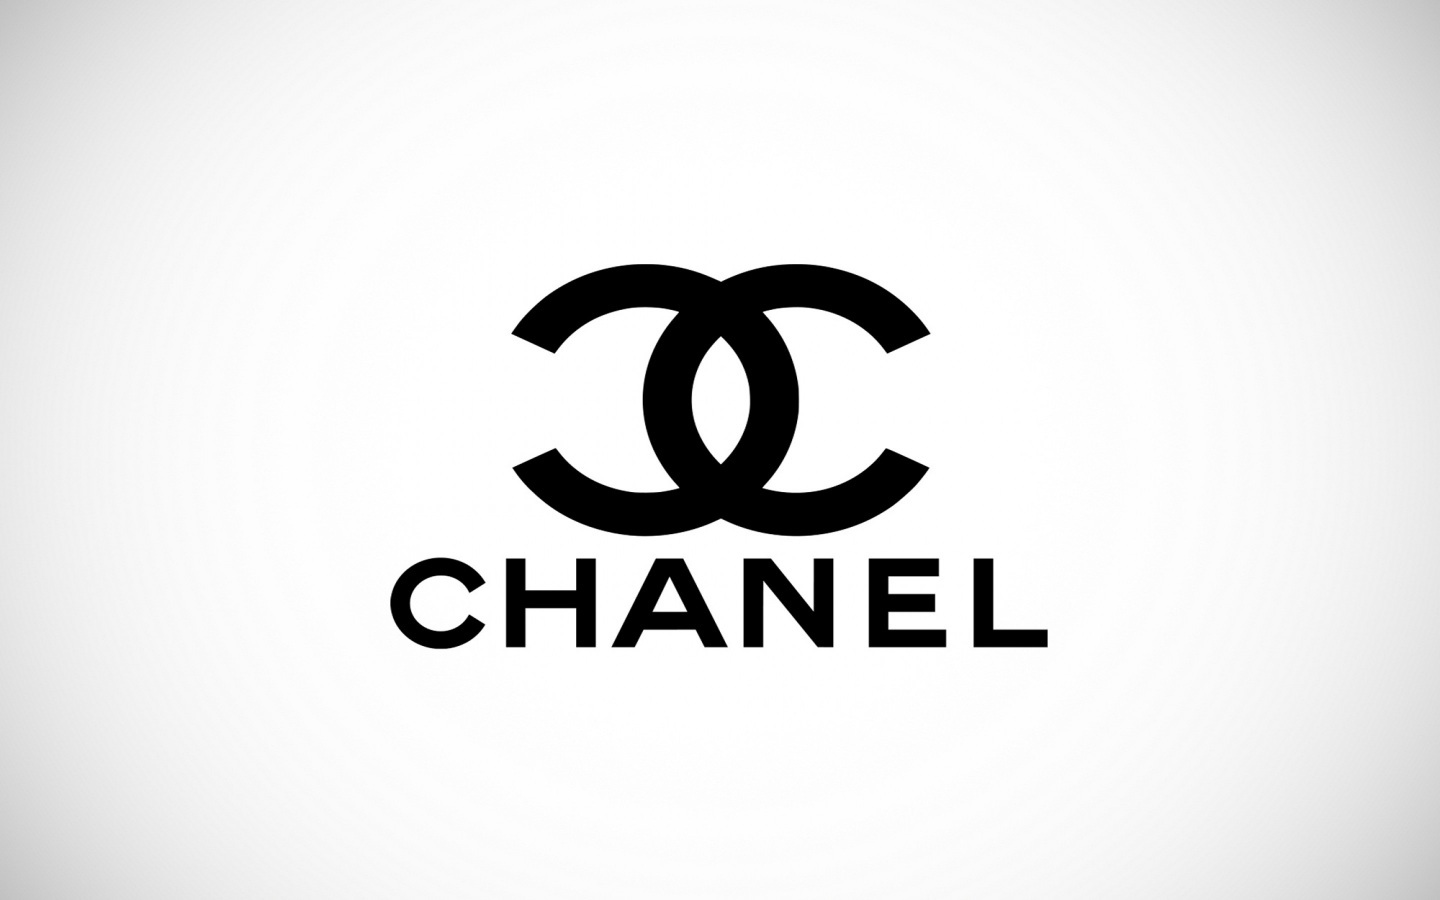 Top HD Chanel Logo Wallpaper Graphics HD 20808 KB 1440x900